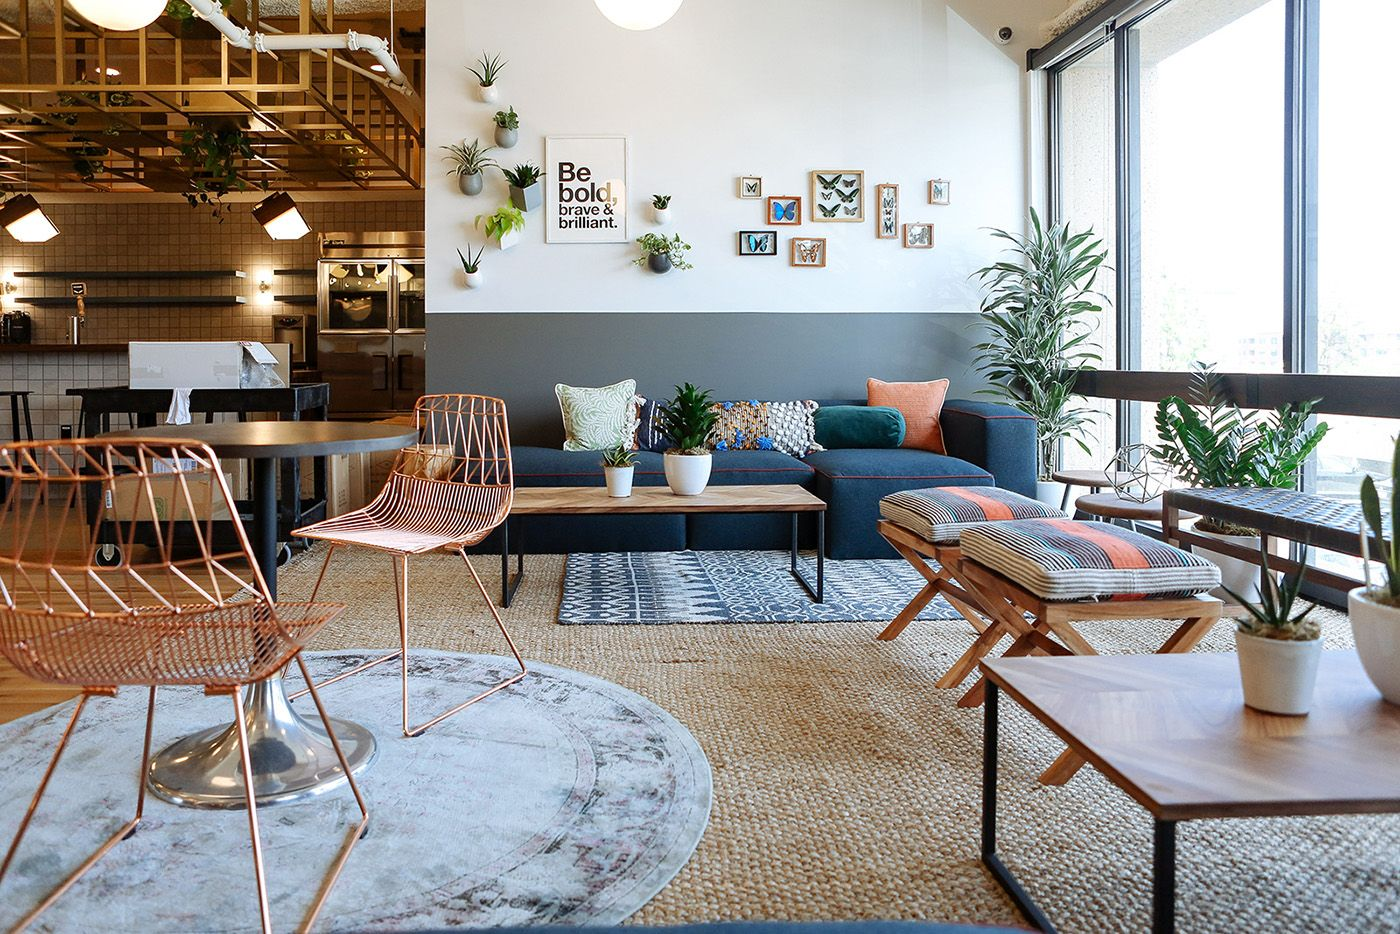 Wework A 16 Billion Tech Unicorn That Leases Out Private Offices And Co Working Spaces To Creative F Coworking Space Design Coworking Design Workspace Design